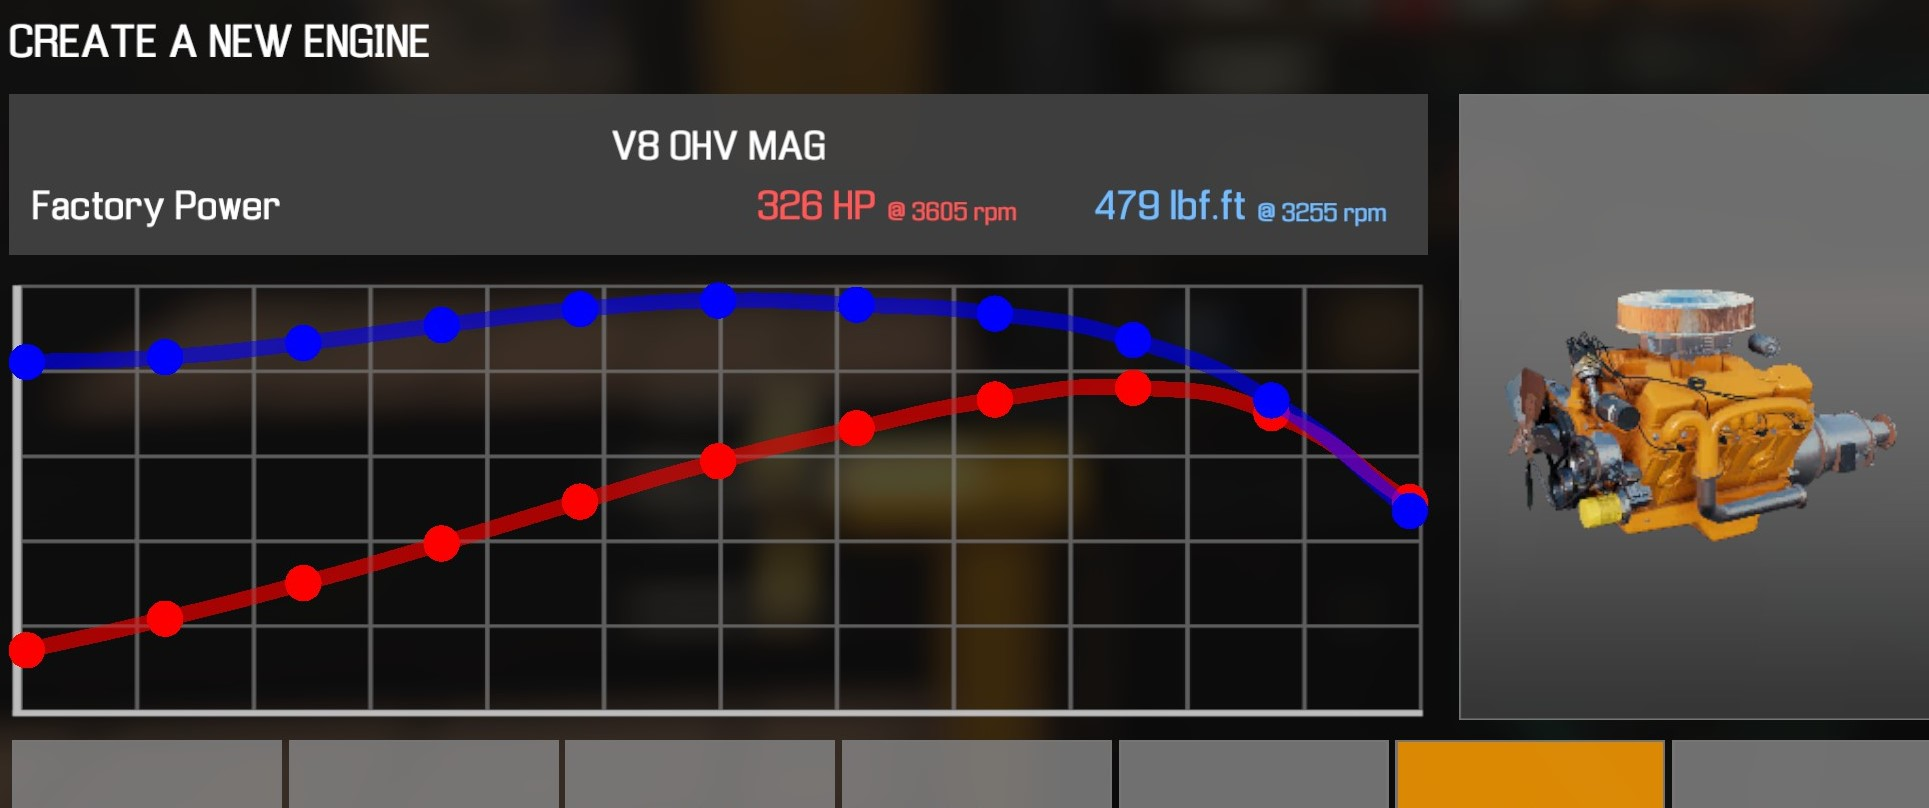 Car Mechanic Simulator 2021 - How to Buy Engine Parts and All Engines in Game Information - V8 OHV MAG - 4C11869